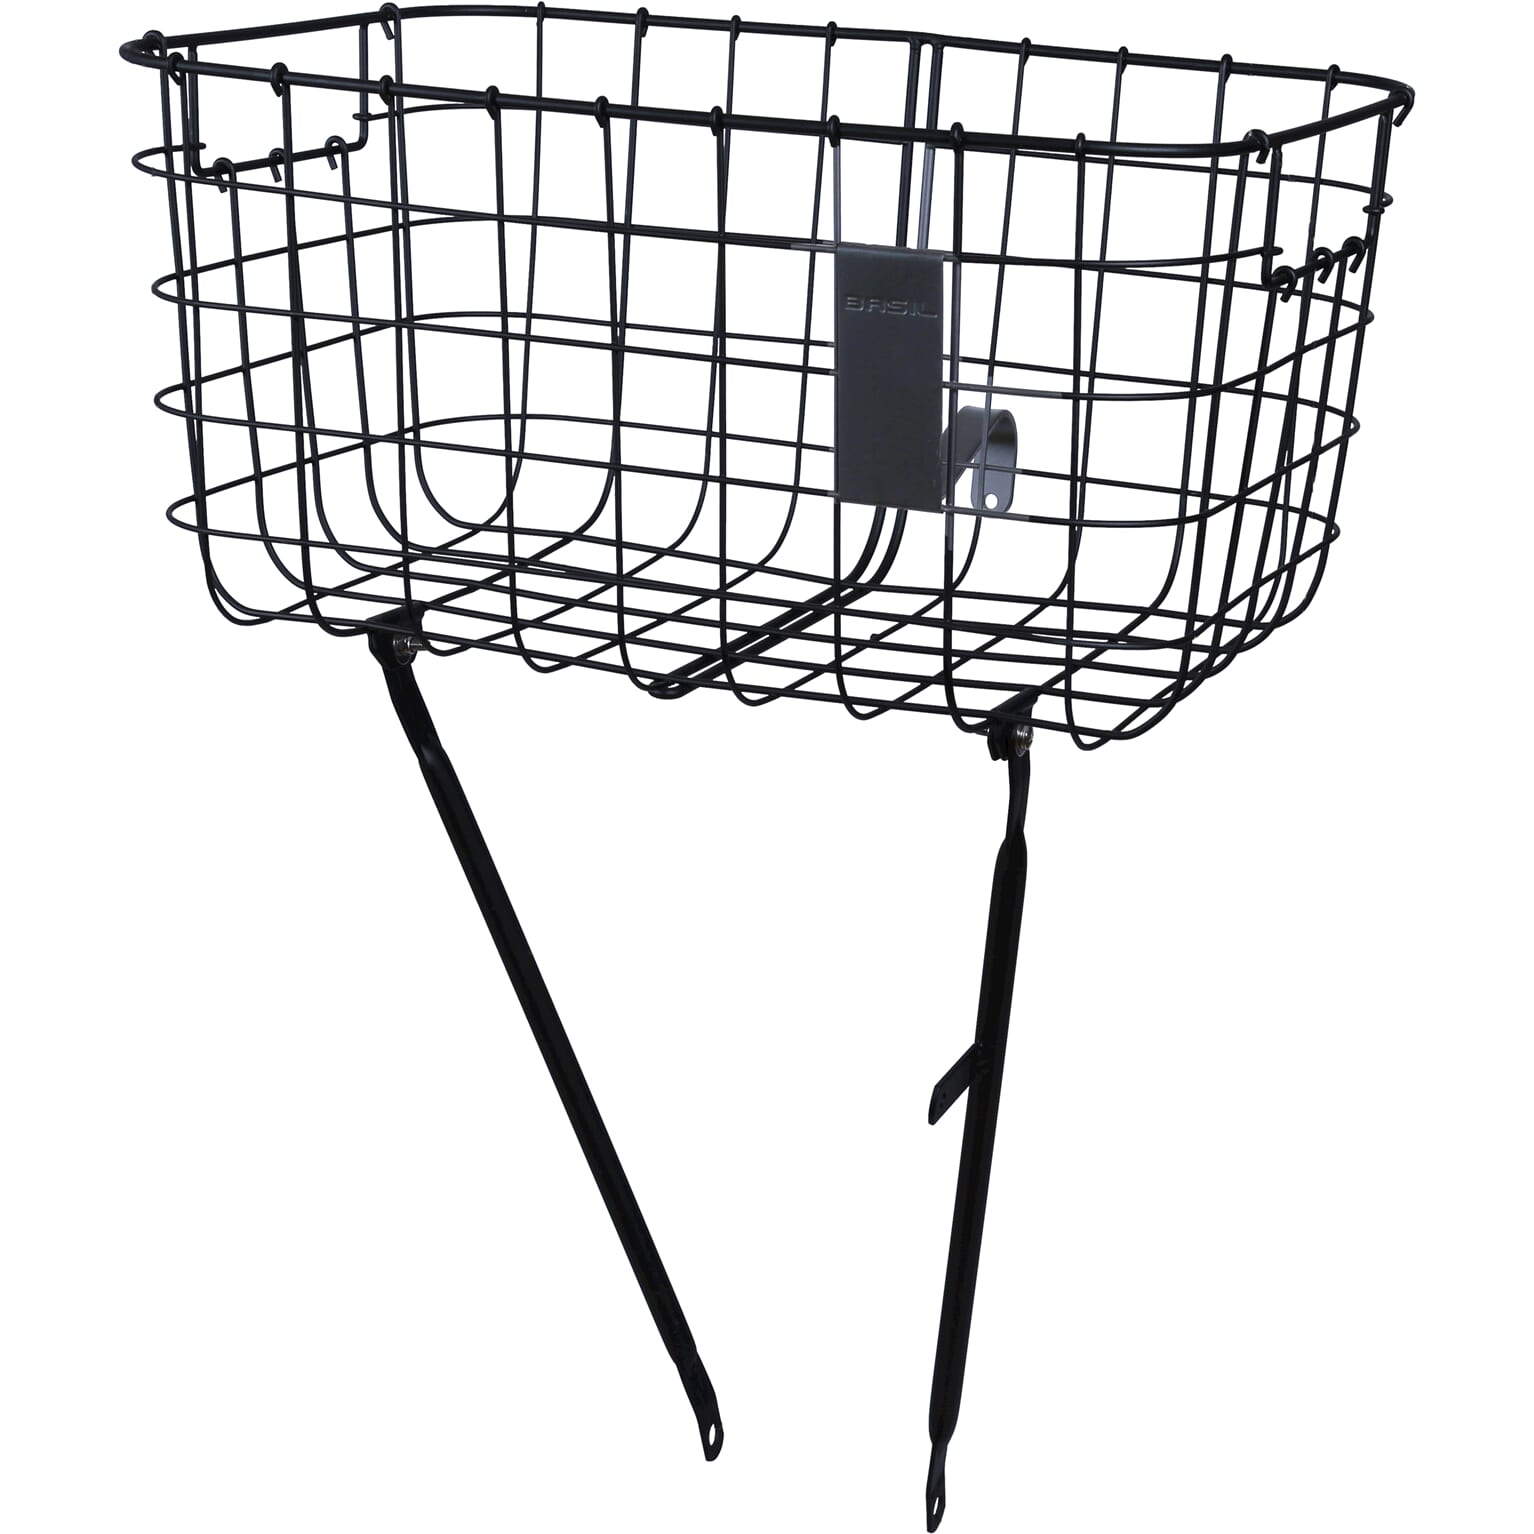 Basil Robin Bicycle Basket 26/28 Inch Fixed - Black